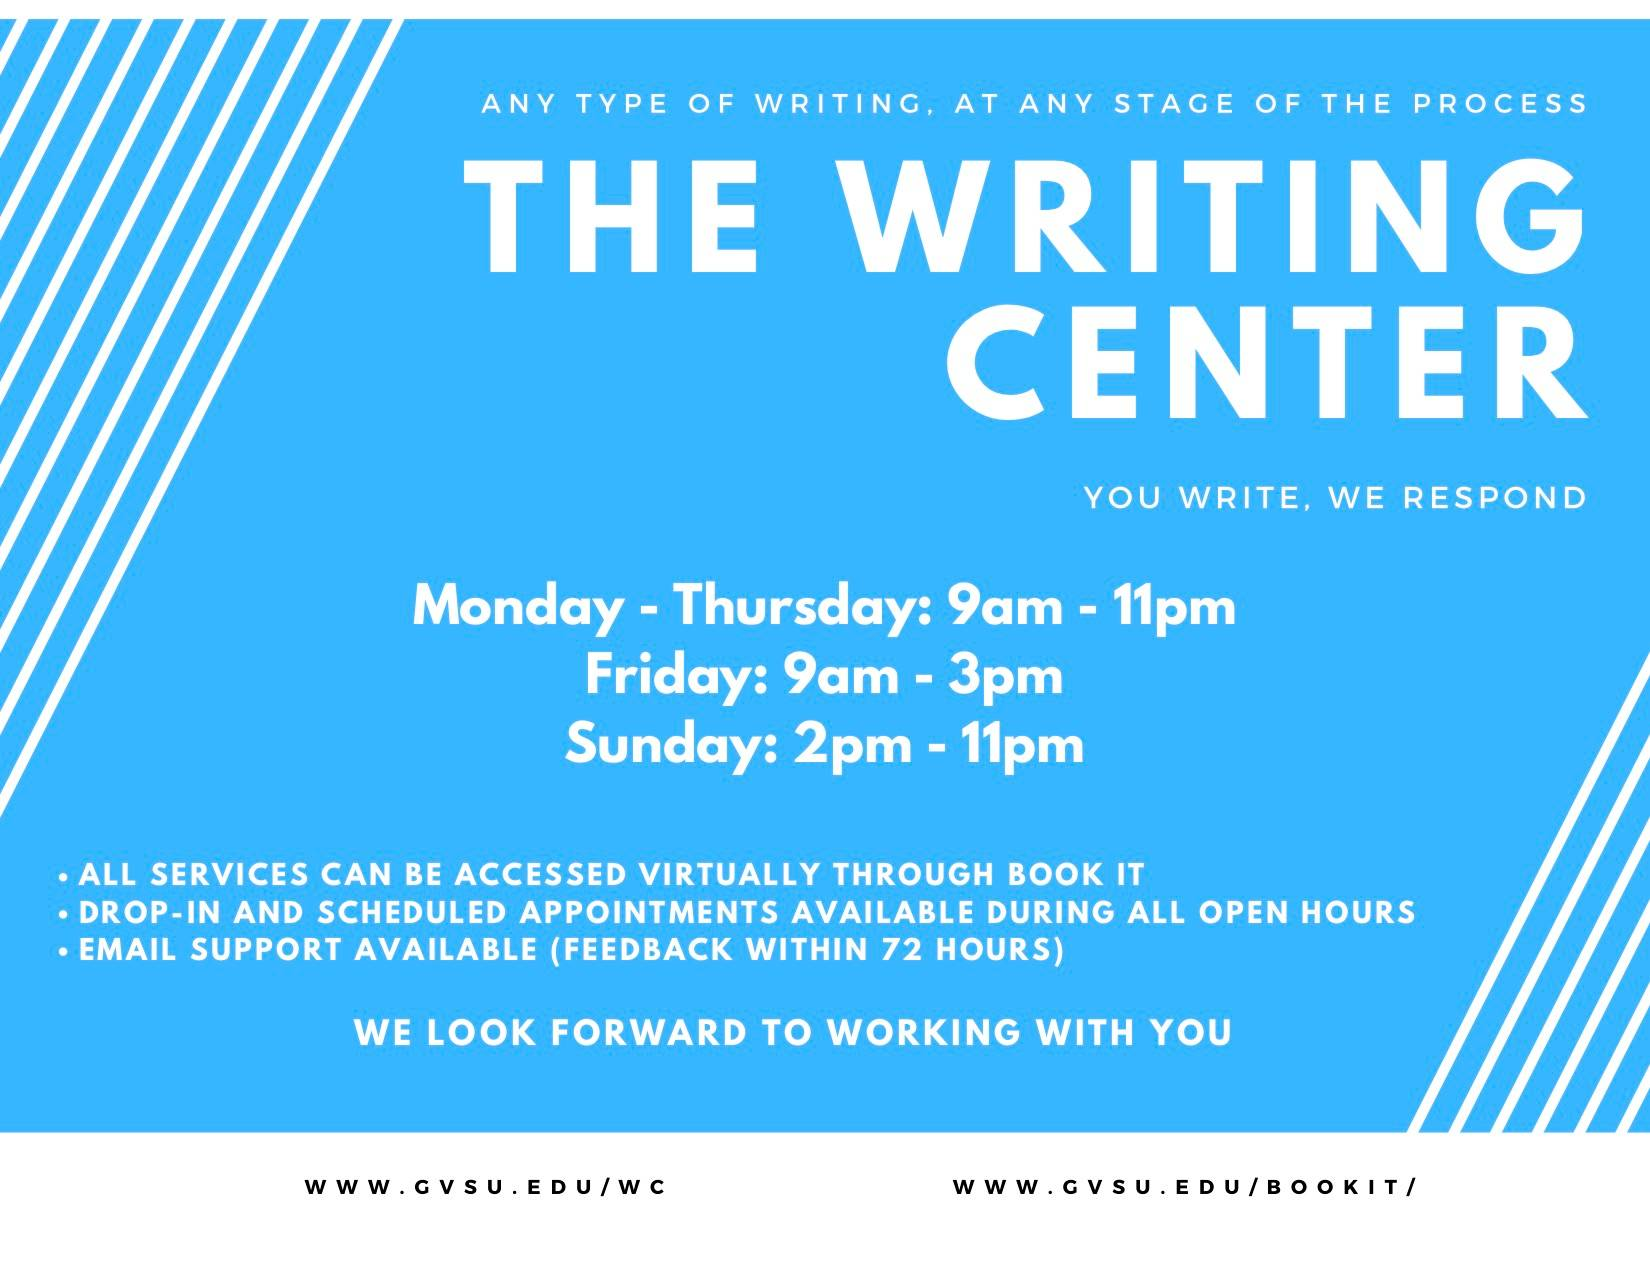 Fall 2020 writing center hours